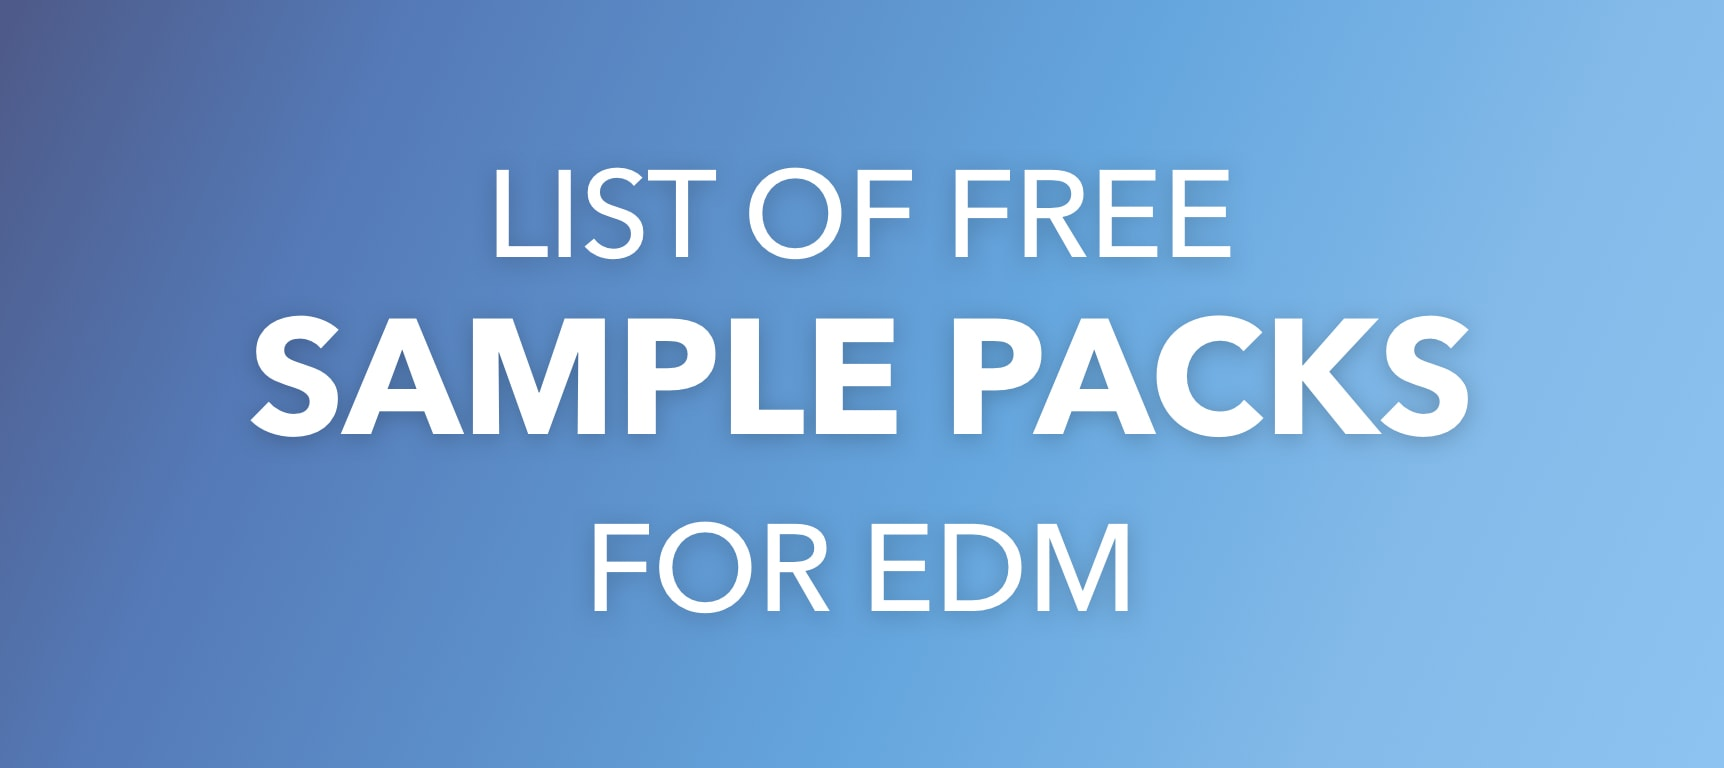 30+ Free EDM Sample Packs (EDM Samples, Loops, Presets)